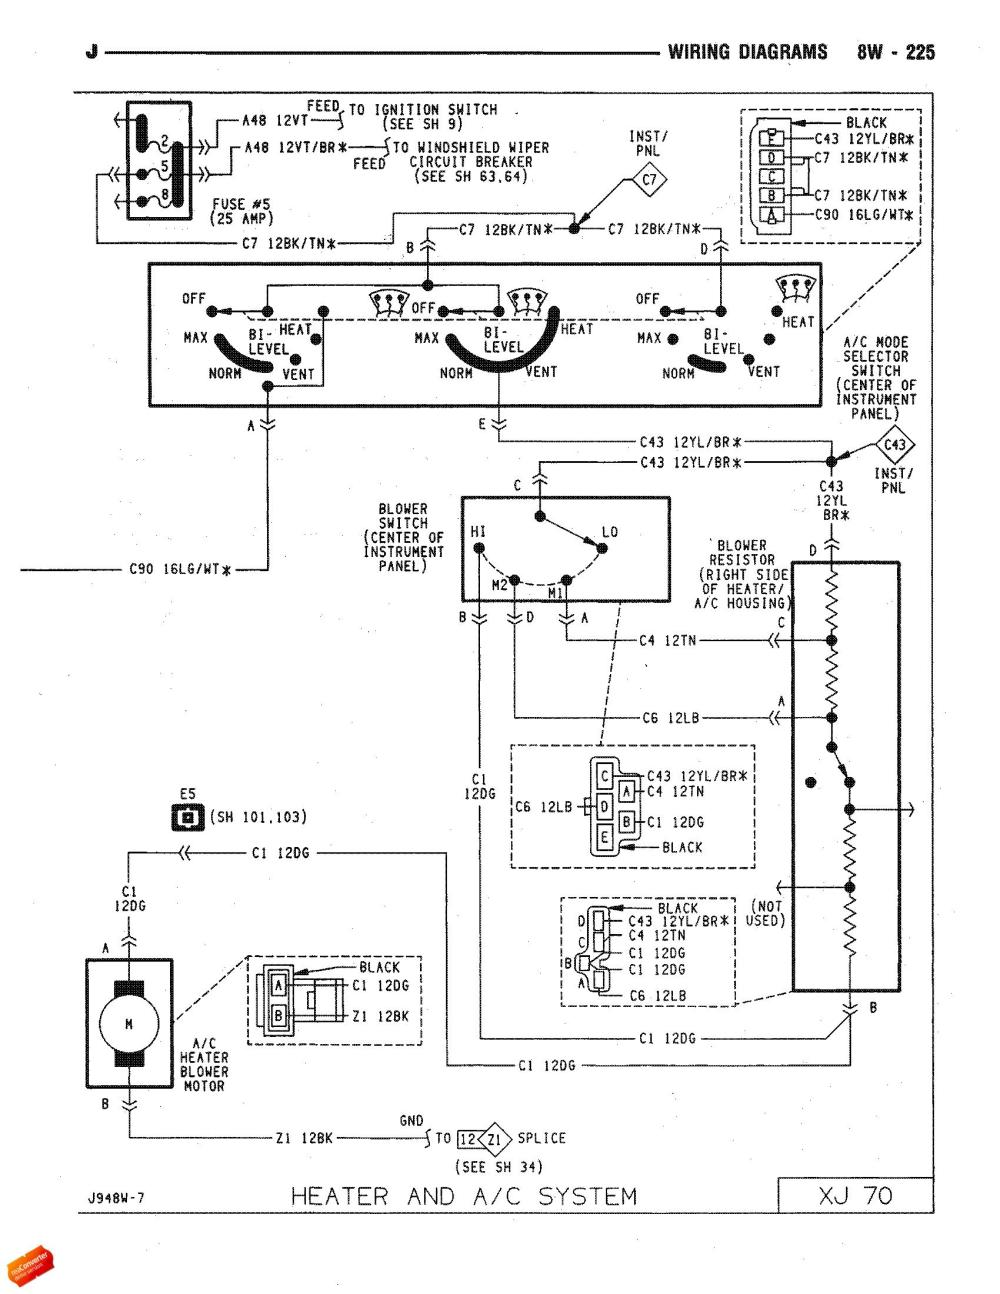 medium resolution of 1994 jeep blower motor wiring diagram